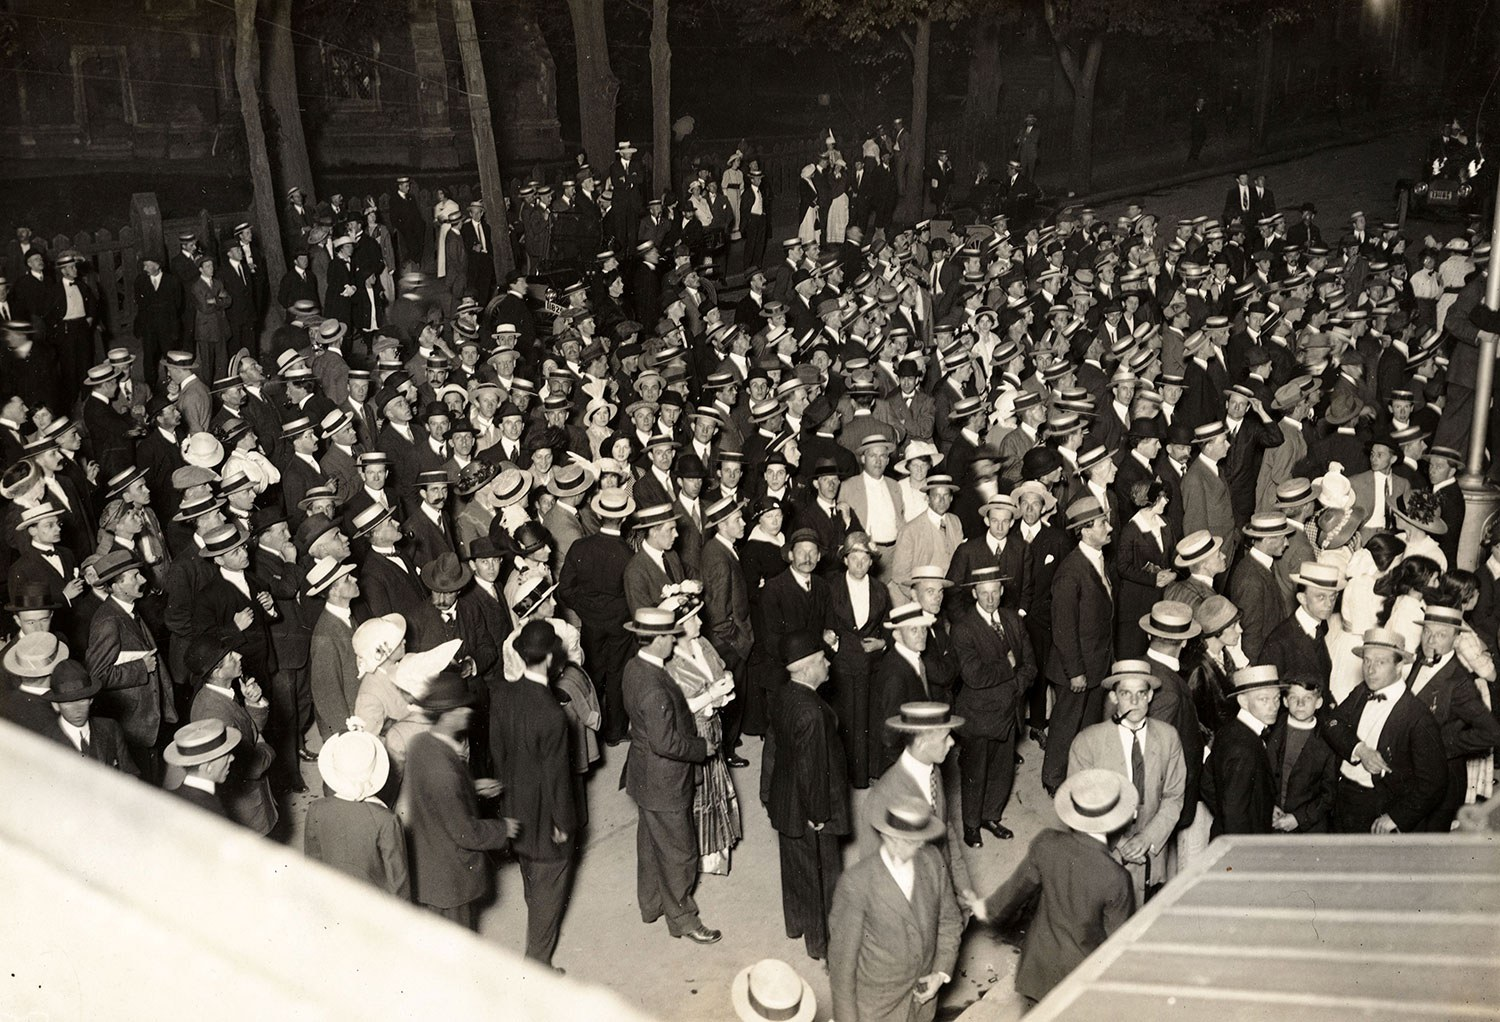 """""""War declared!"""" Scene outside the Toronto Star office at midnight on August 4, 1914. Photo: Queen's University Archives, A.A Chesterfield fonds."""